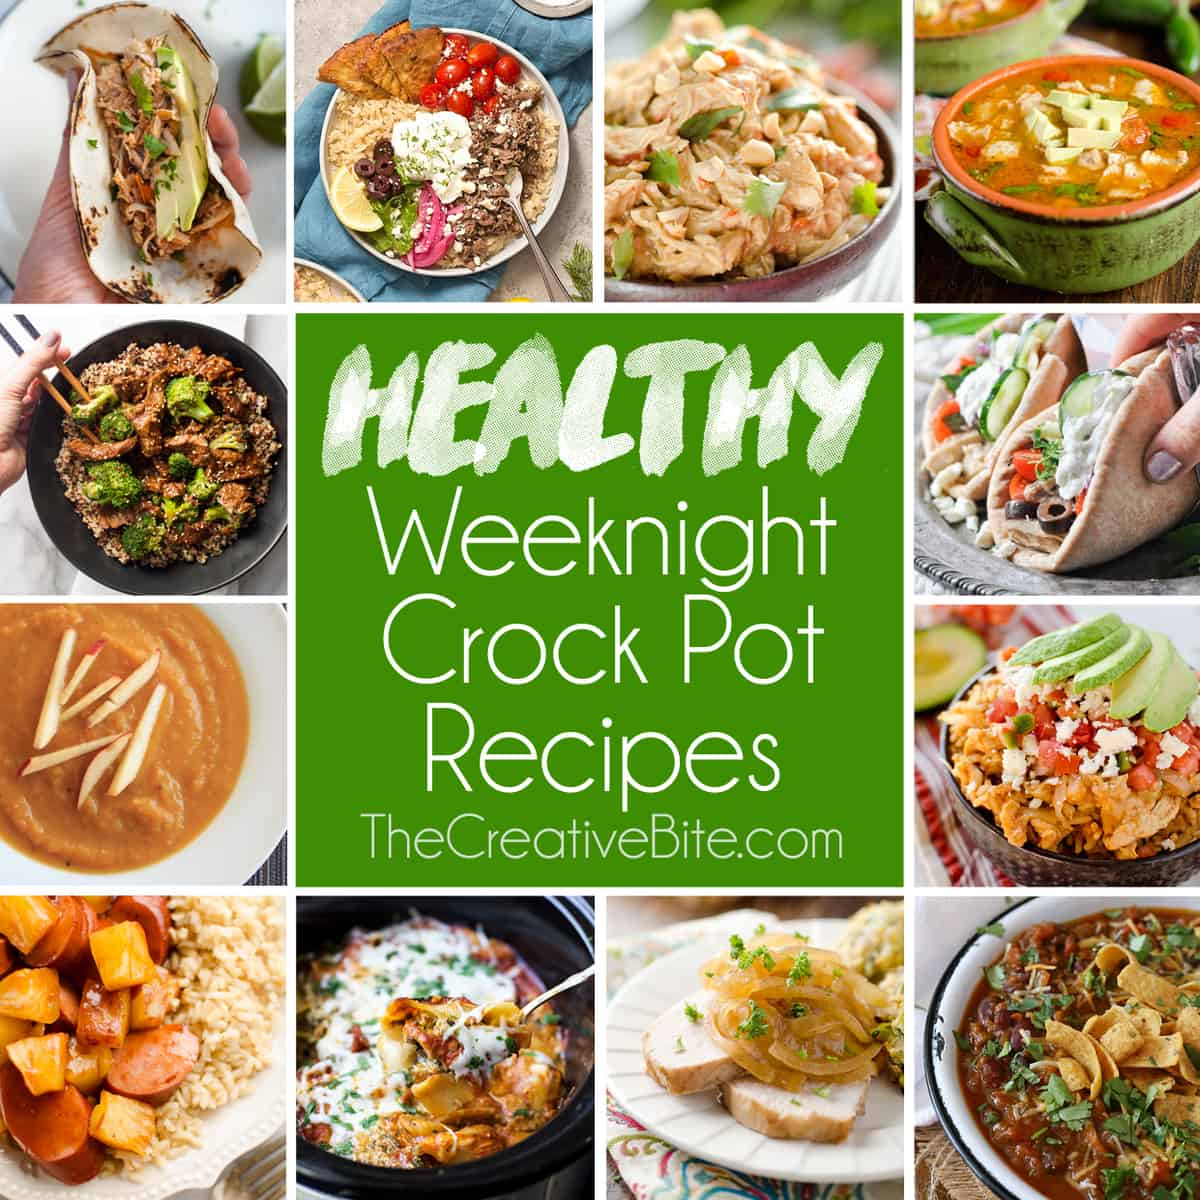 Healthy Weeknight Crock Pot Recipes